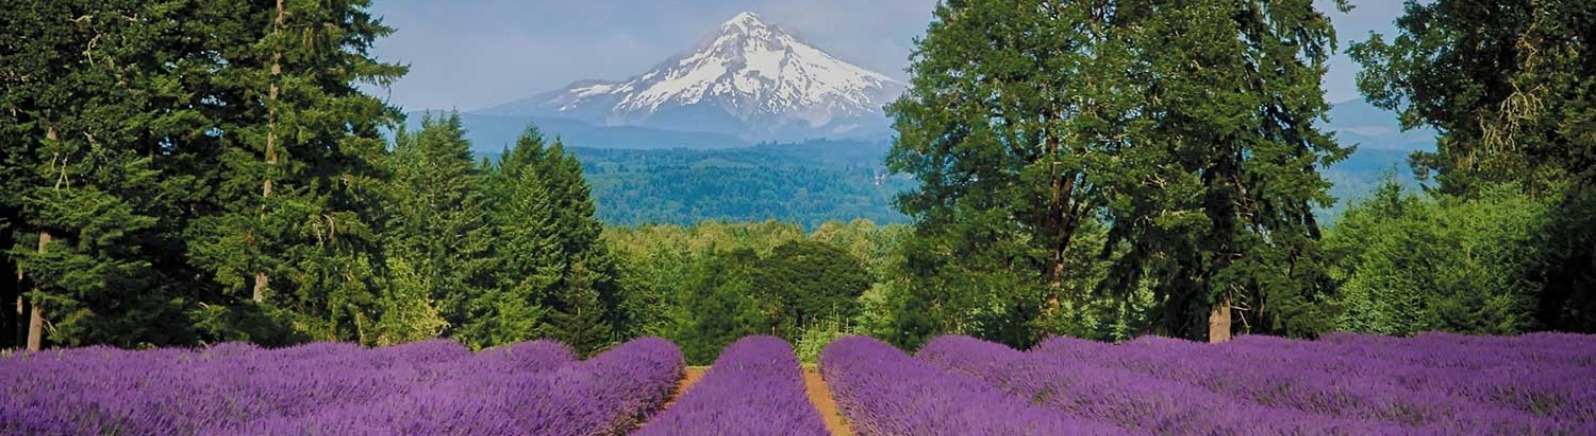 Long rows of blooming lavender surrounded by tall firs with a view of snow-covered Mt. Hood in far distance on a summer's day.